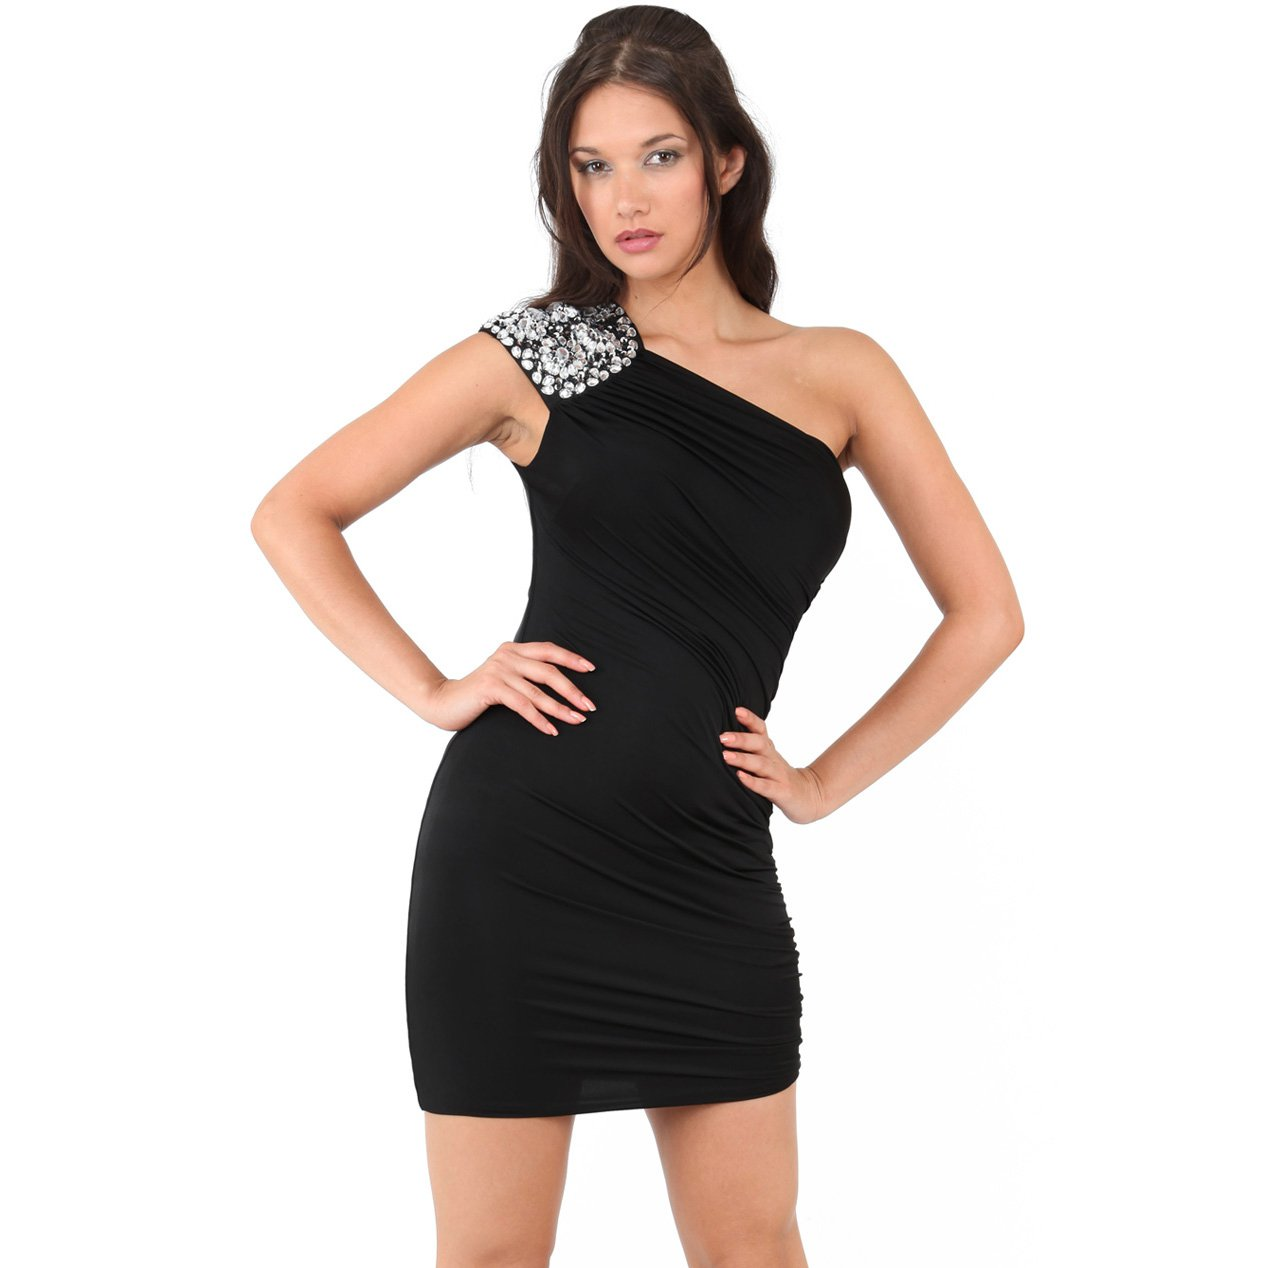 BLACK JEWEL BEADED RUCHED ONE SHOULDER BODYCON EVENING MINI COCKTAIL PARTY DRESS UK 12-14, US 8-10